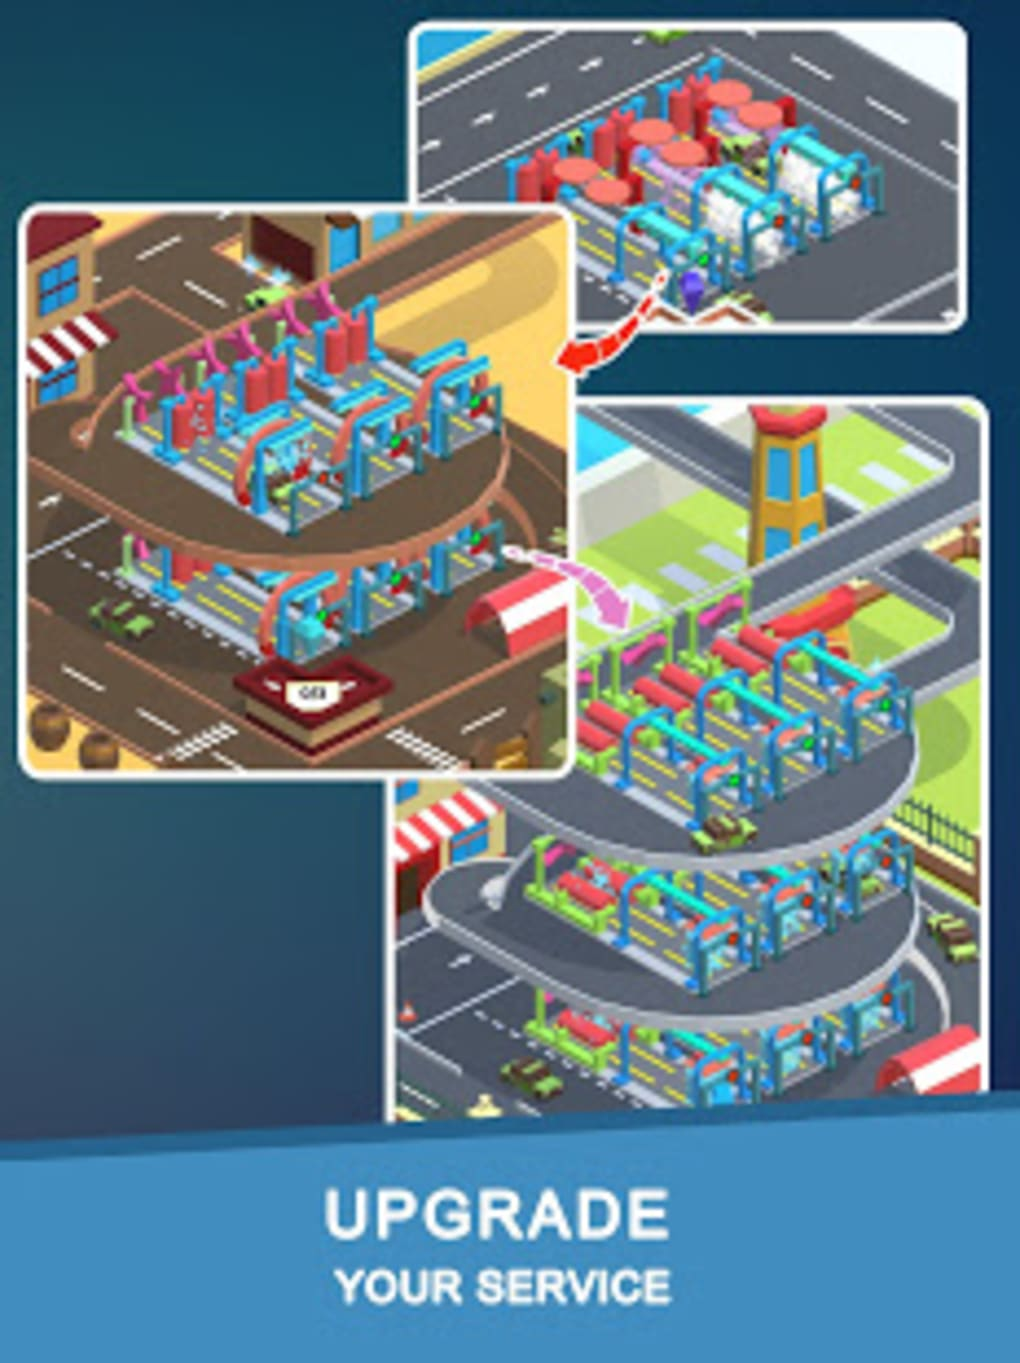 Idle Car Tycoon APK cho Android - Tải về